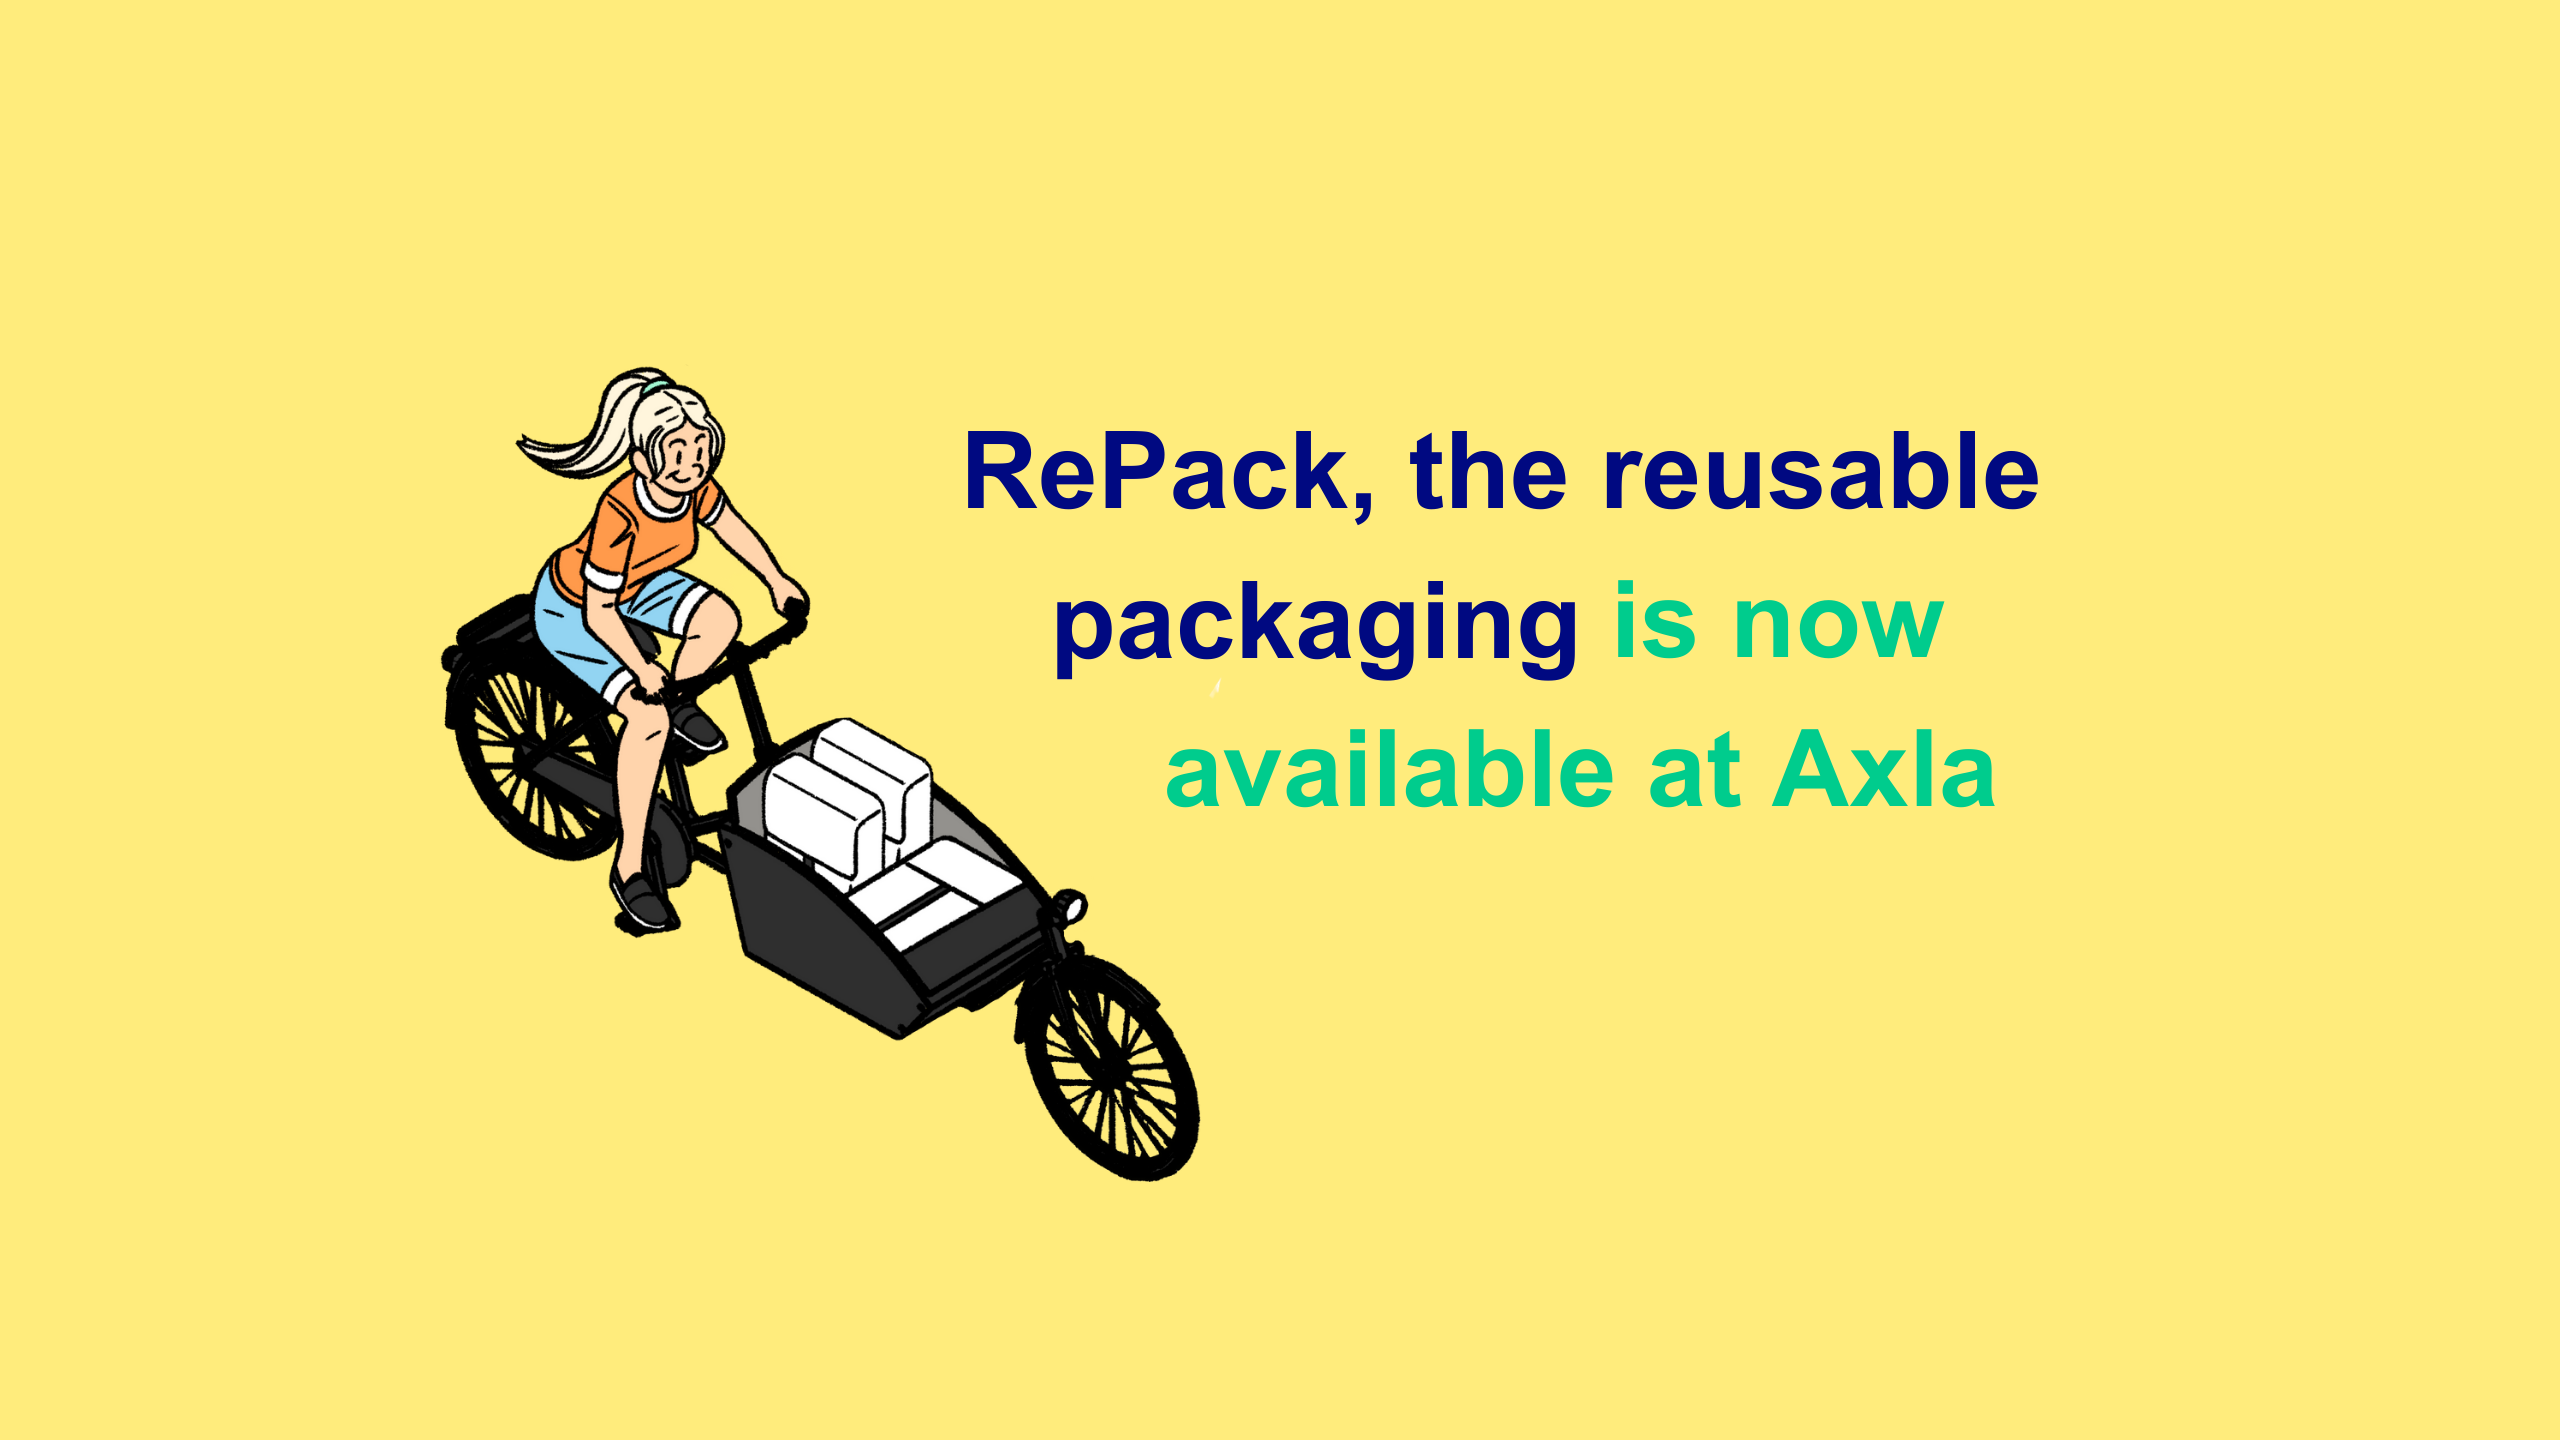 RePack and Axla cooperation